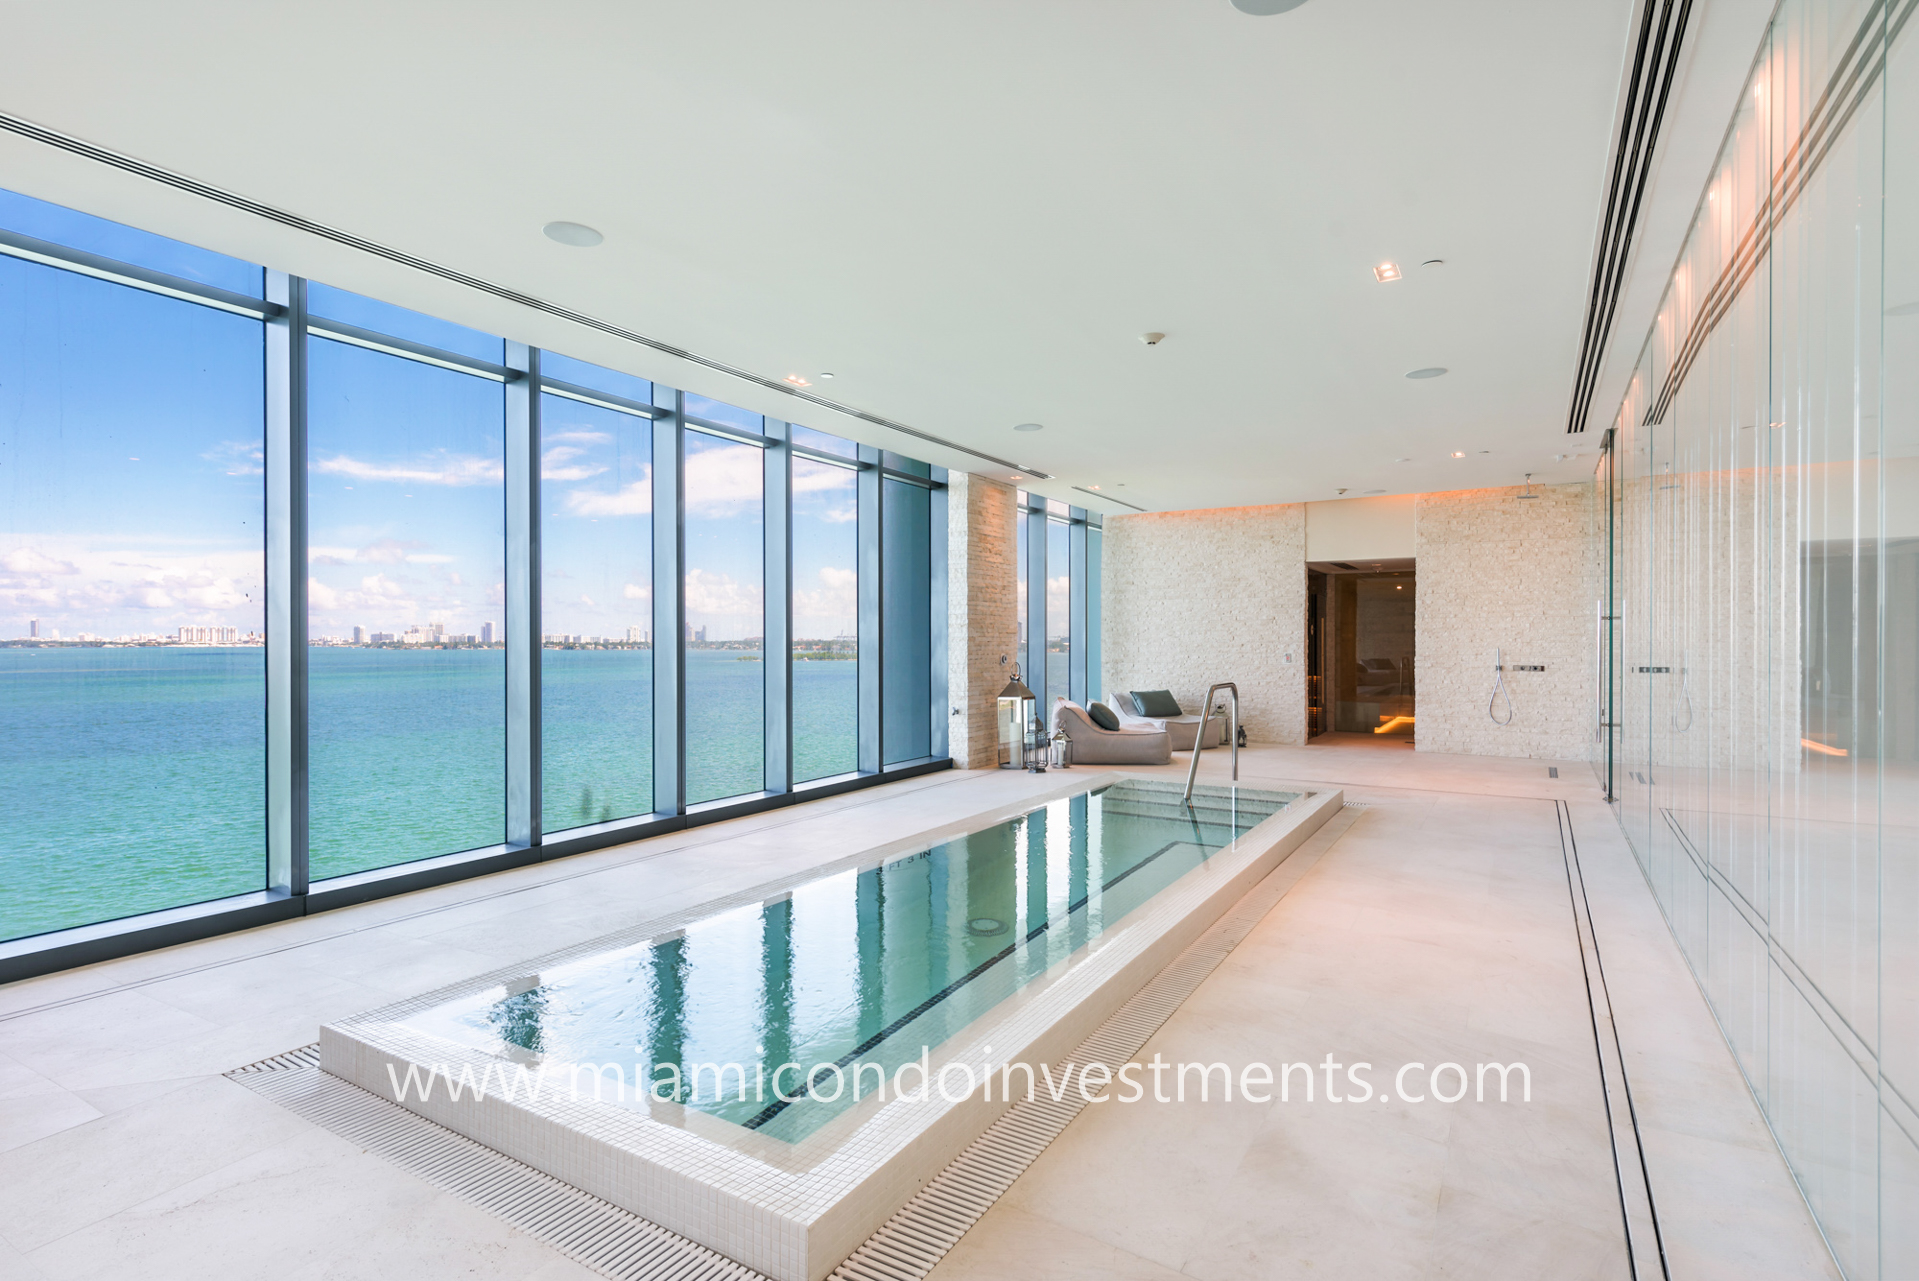 plunge pool with water view